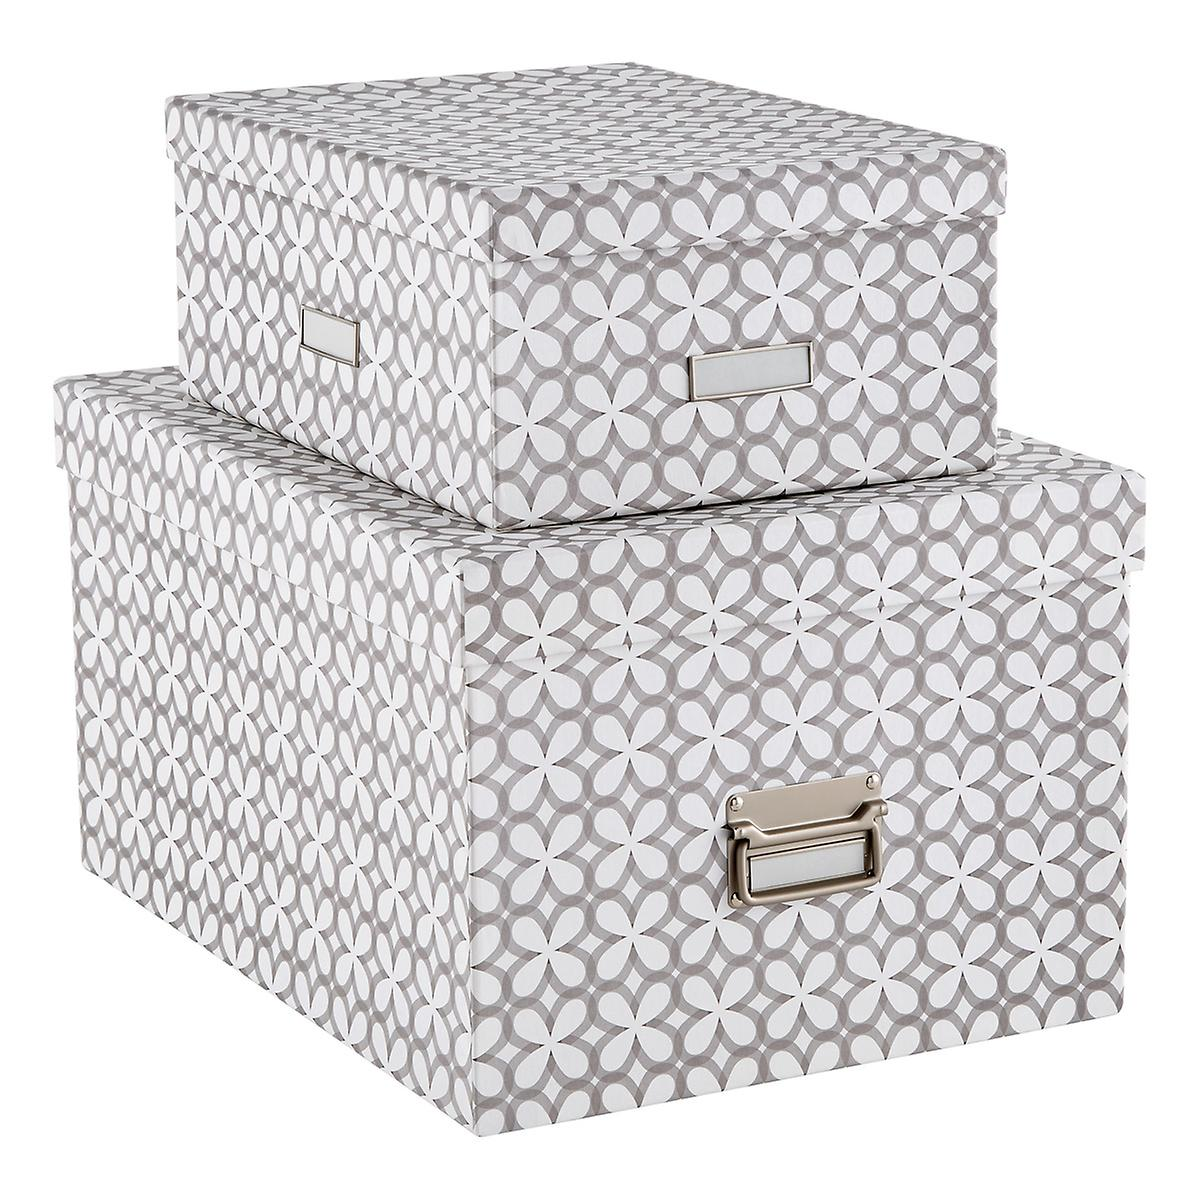 Our Milano Graphic Bigso Storage Boxes